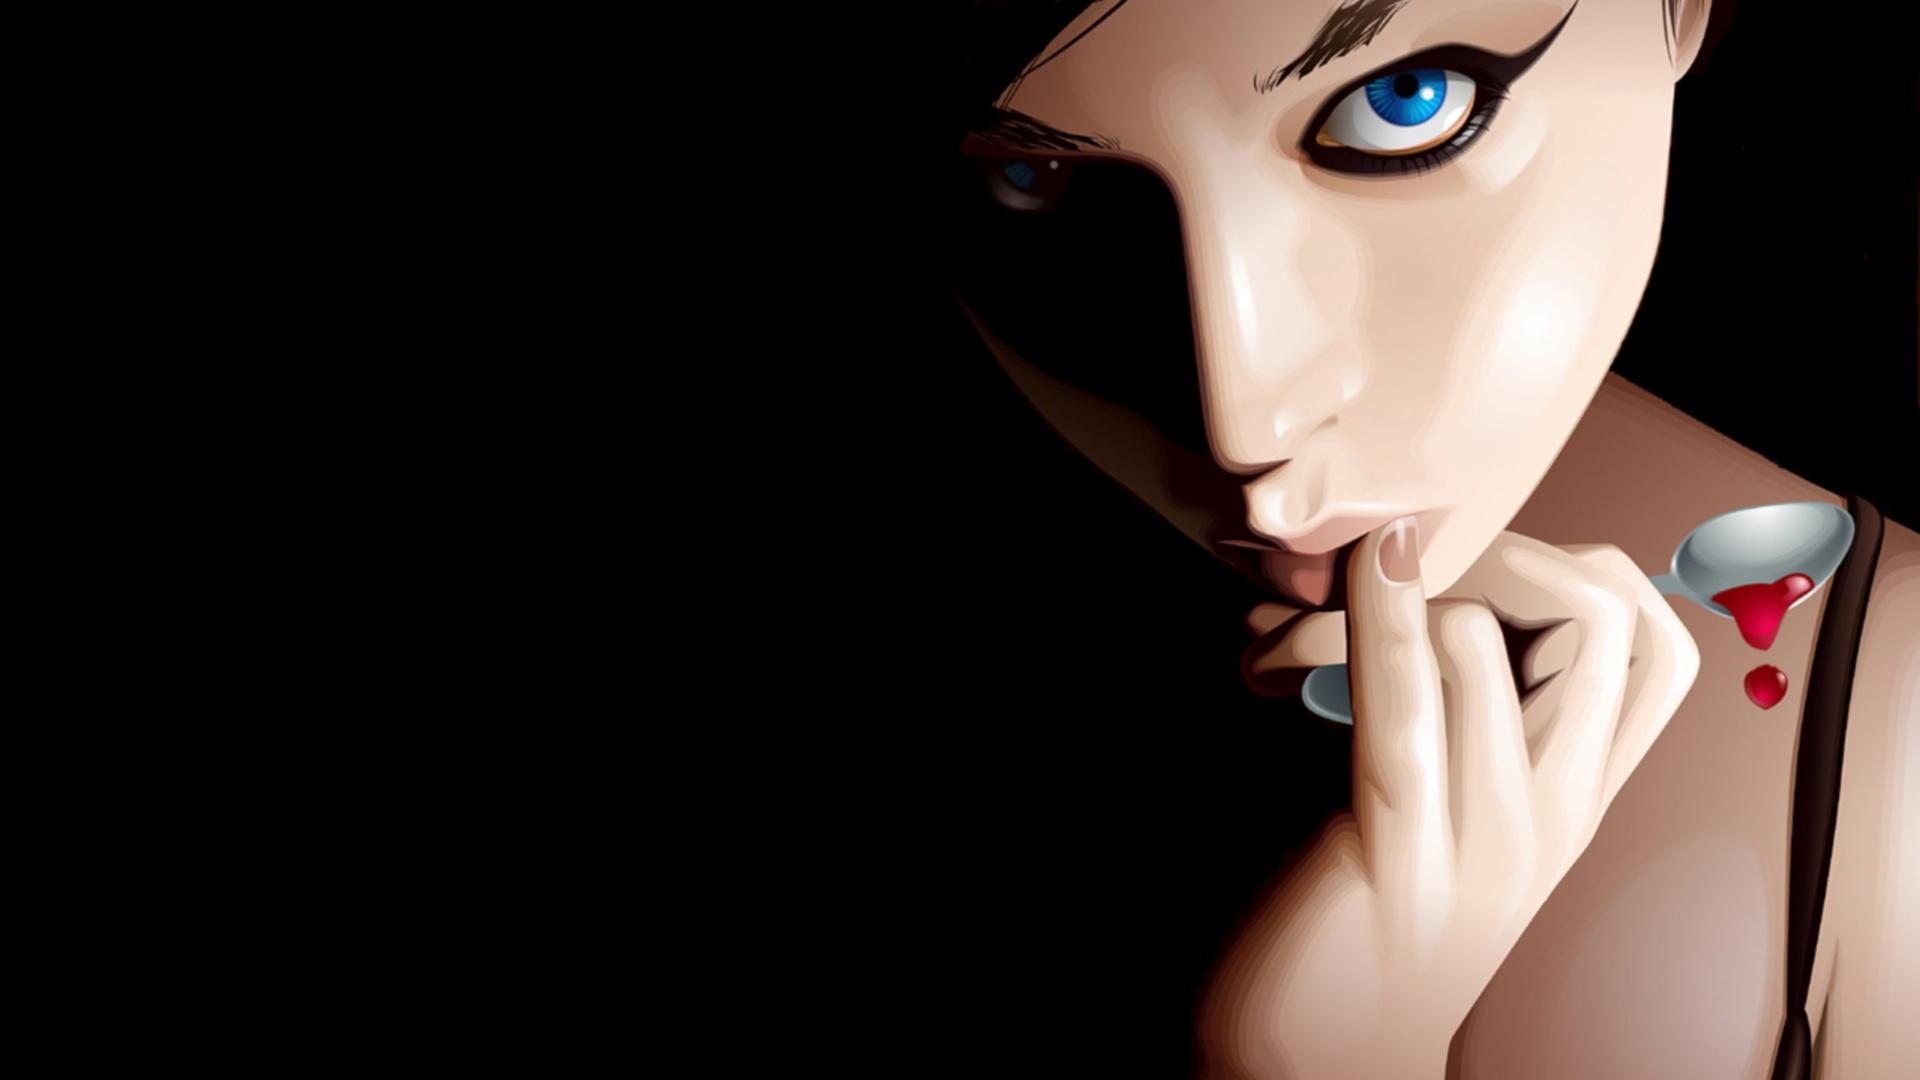 Girl In The Darkness Wallpaper 1920x1080 | Img Need